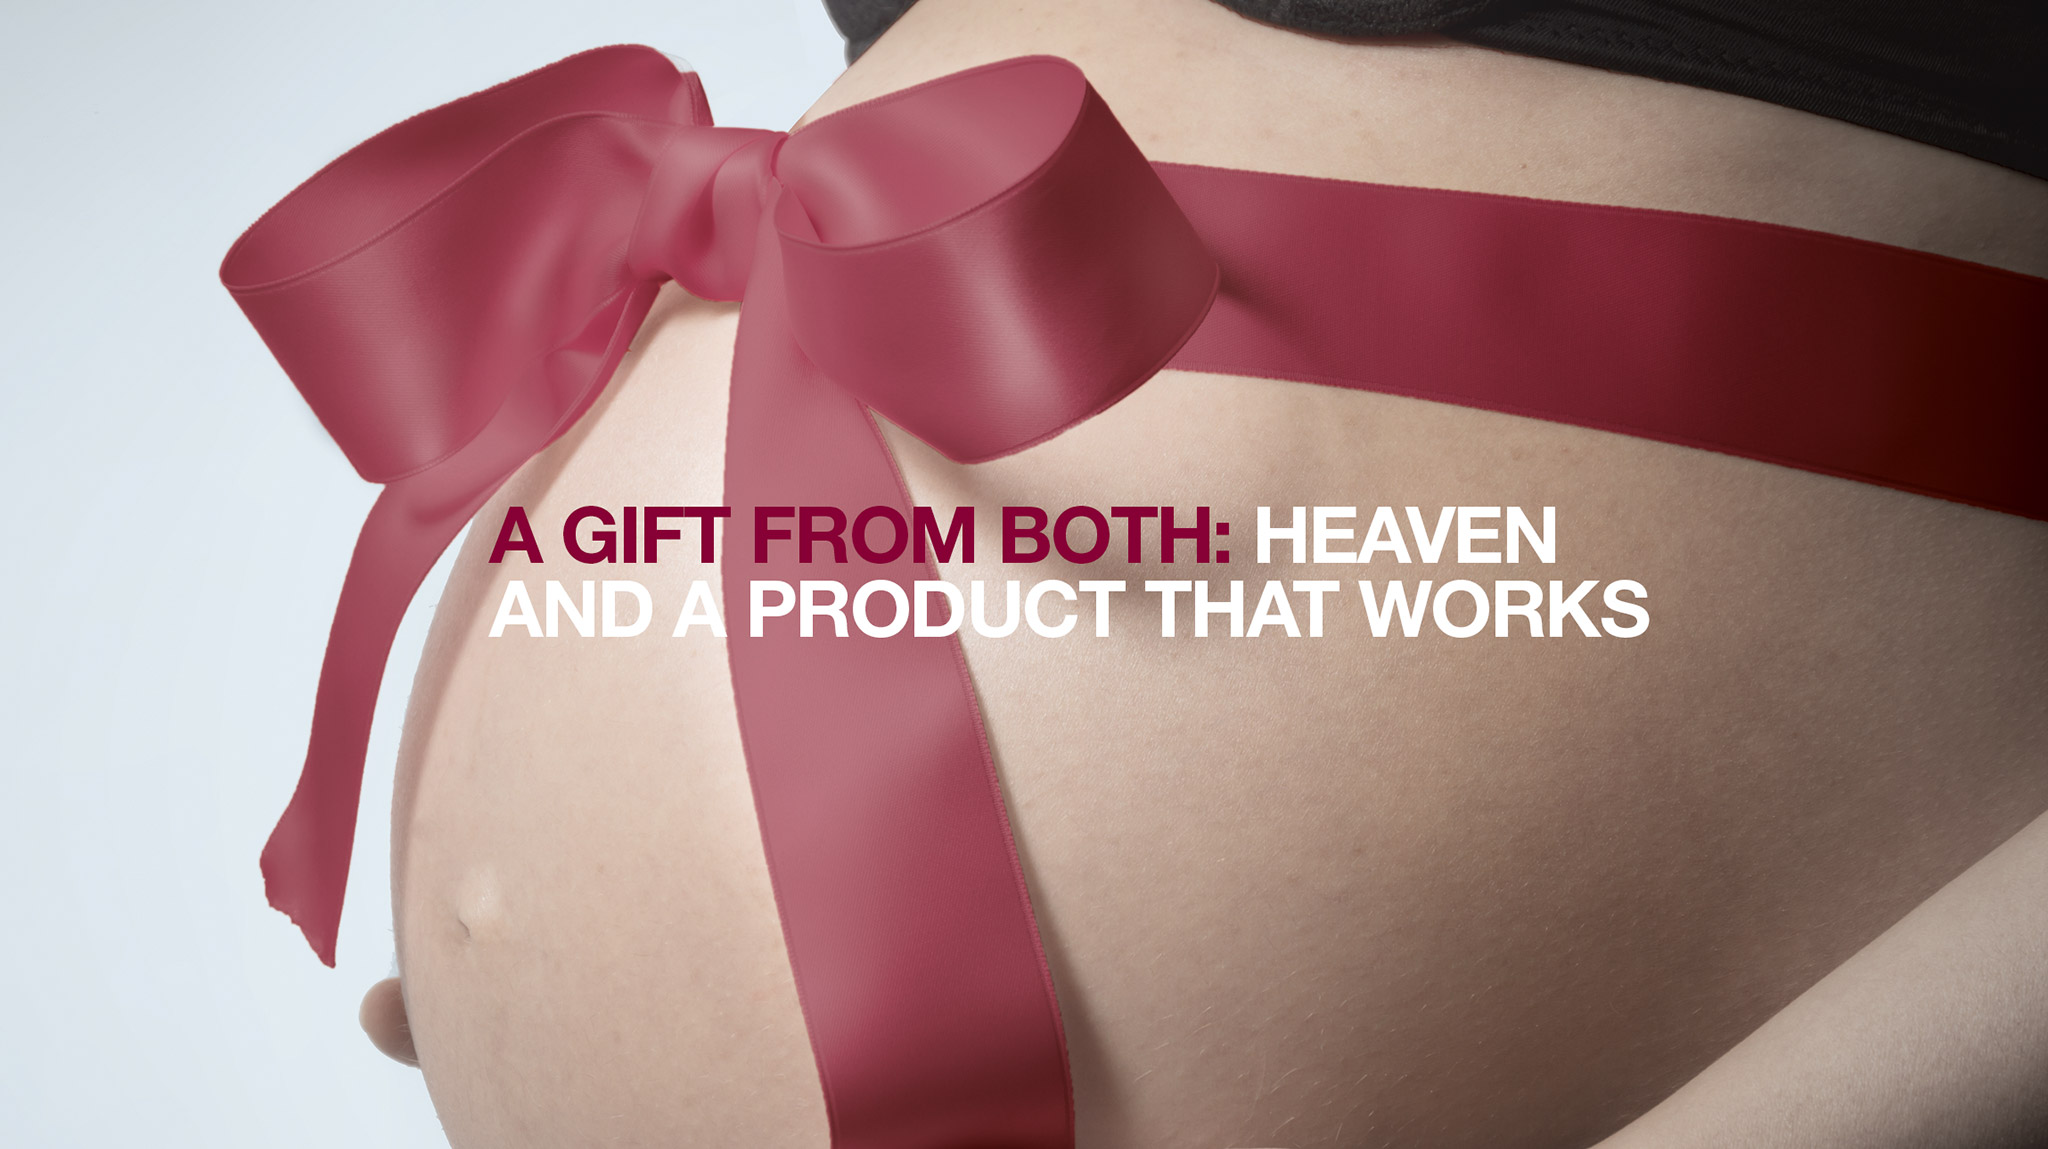 A baby is a gift from both: haven and PROFERTIL®, a product that works